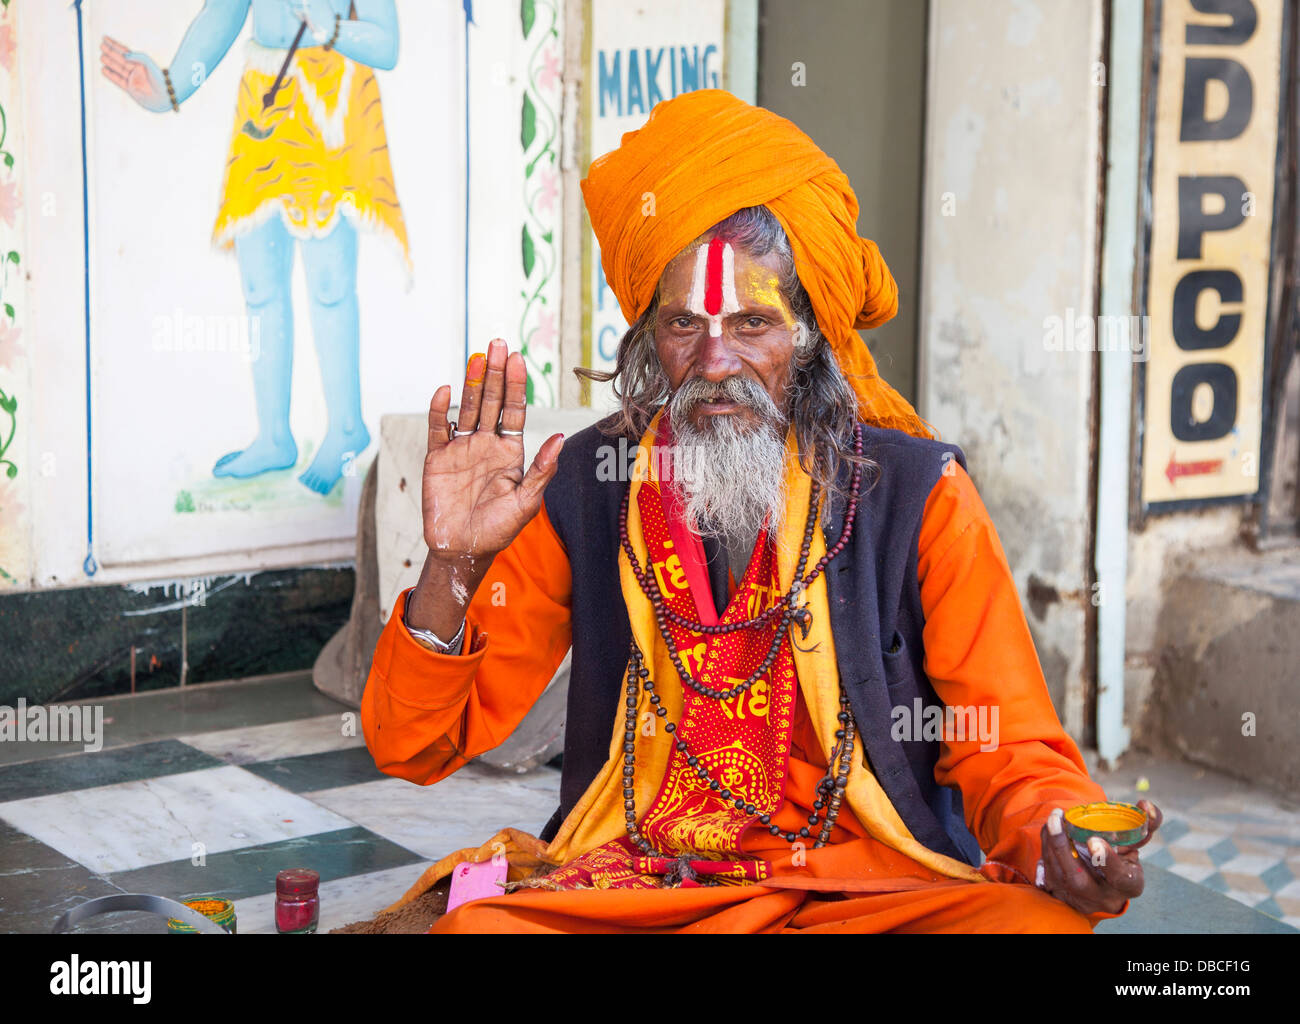 An elderly bearded Hindu sadhu, holy man, in traditional colourful saffron robes, giving a blessing in Udaipur, - Stock Image